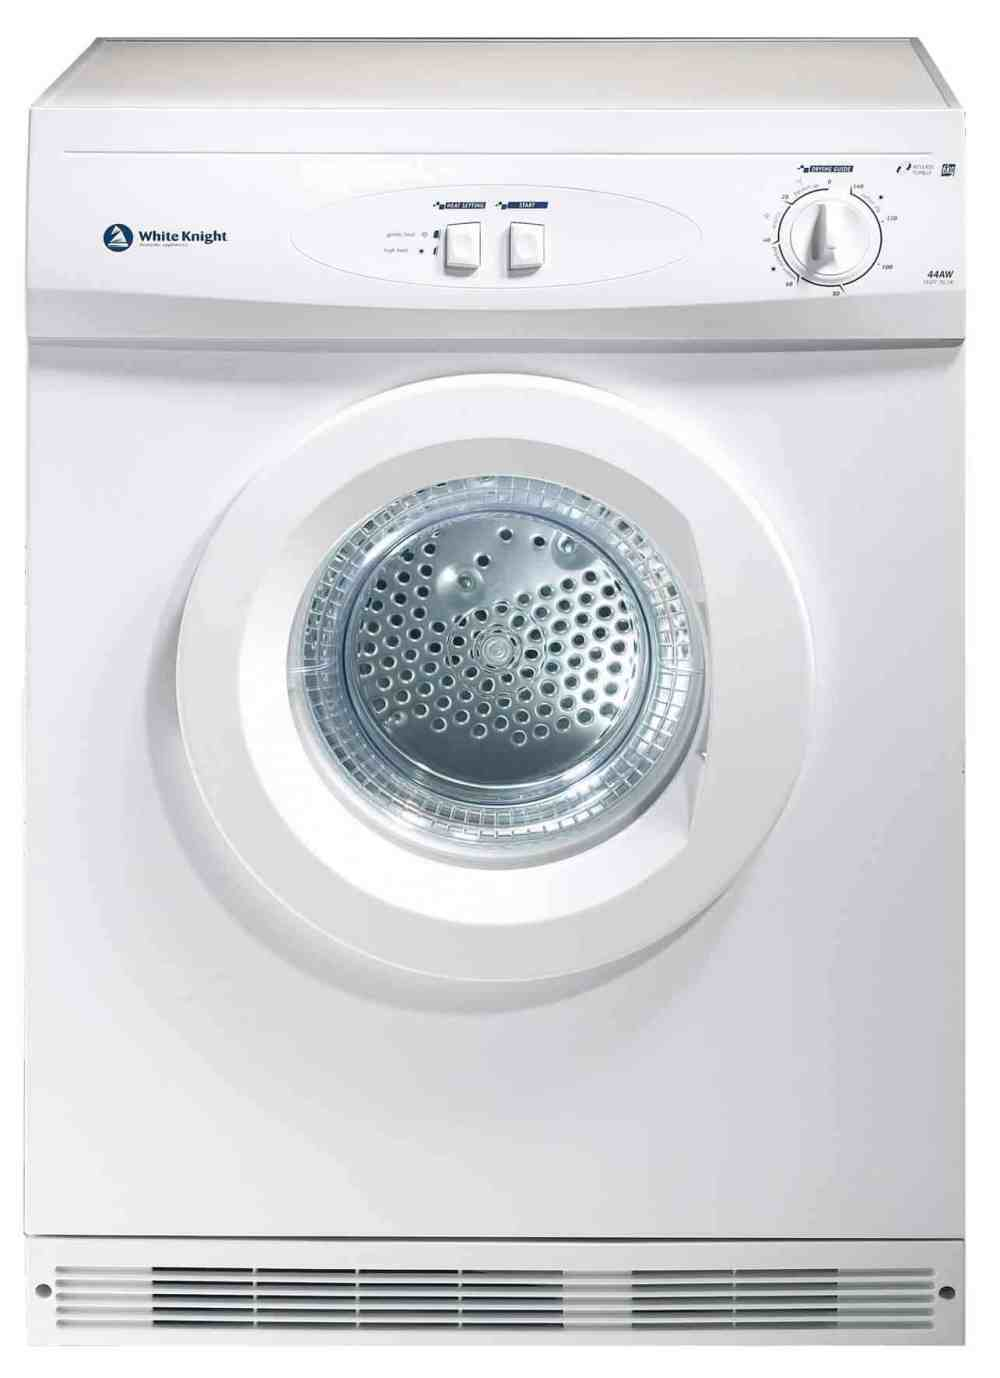 medium resolution of white knight 44aw wiring diagram white knight tumble dryer wiring diagram i will try and help